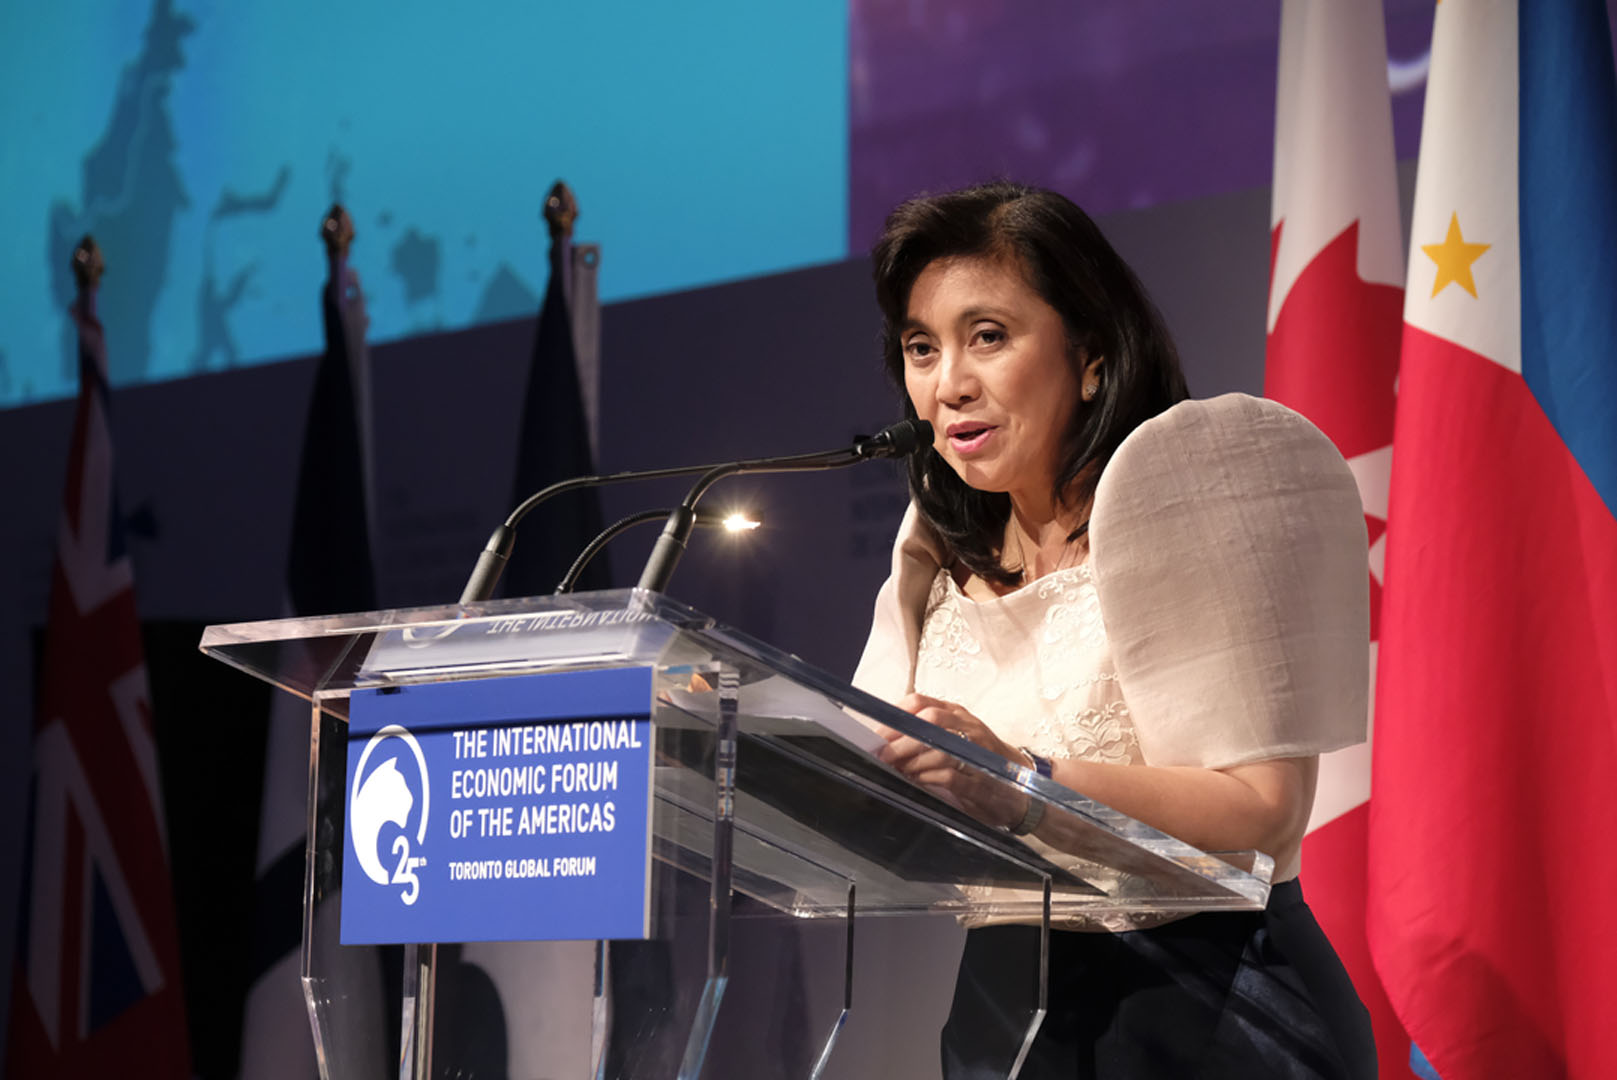 Leni Robredo, Vice-President of the Philippines